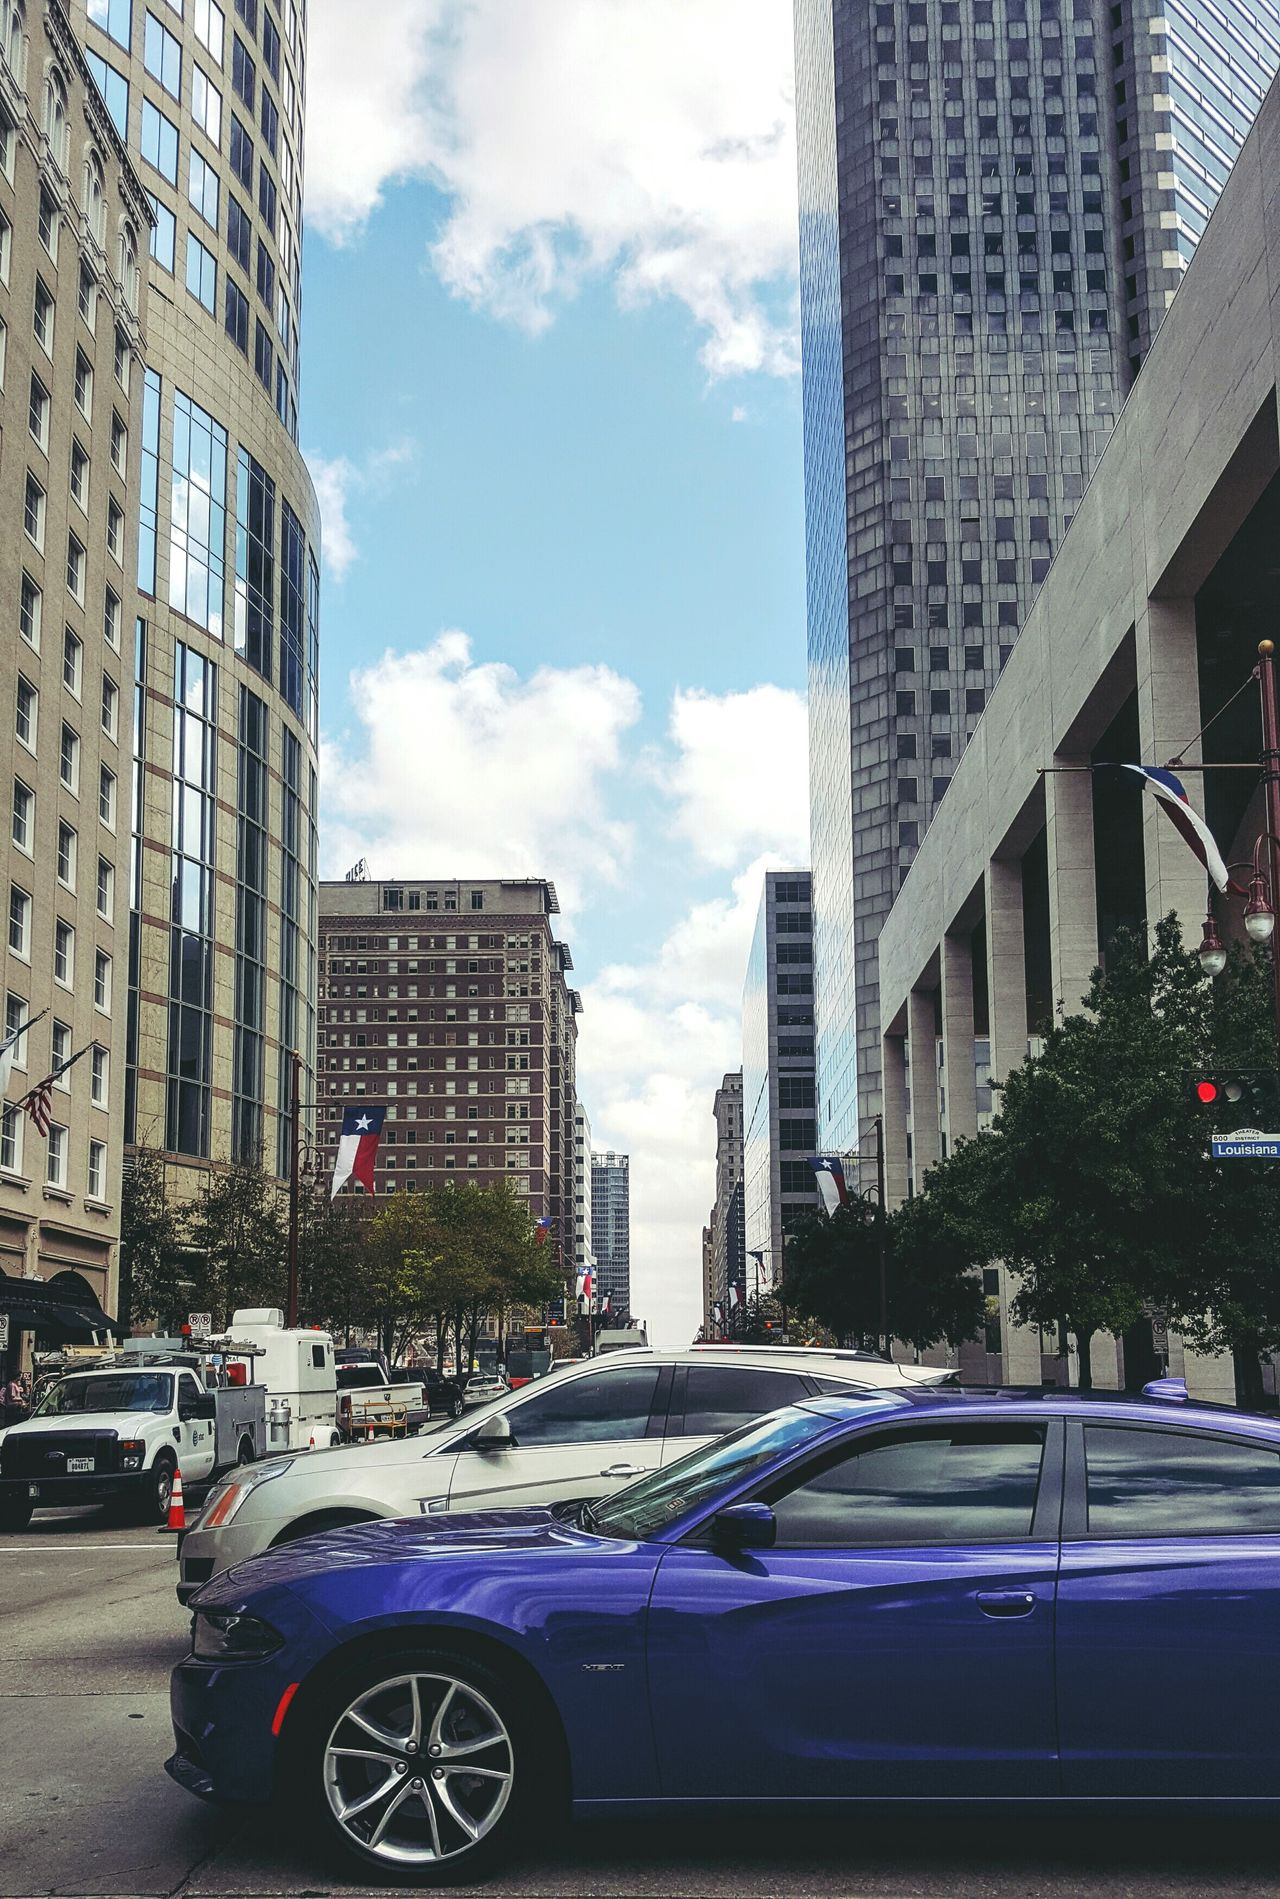 Downtown Houston and a smartphone EyeEmNewHere City Car City Street Architecture Building Exterior Skyscraper Transportation City Life No People Street Day Outdoors Sky Houston Texas Downtown Houston Travel Destinations First Eyeem Photo